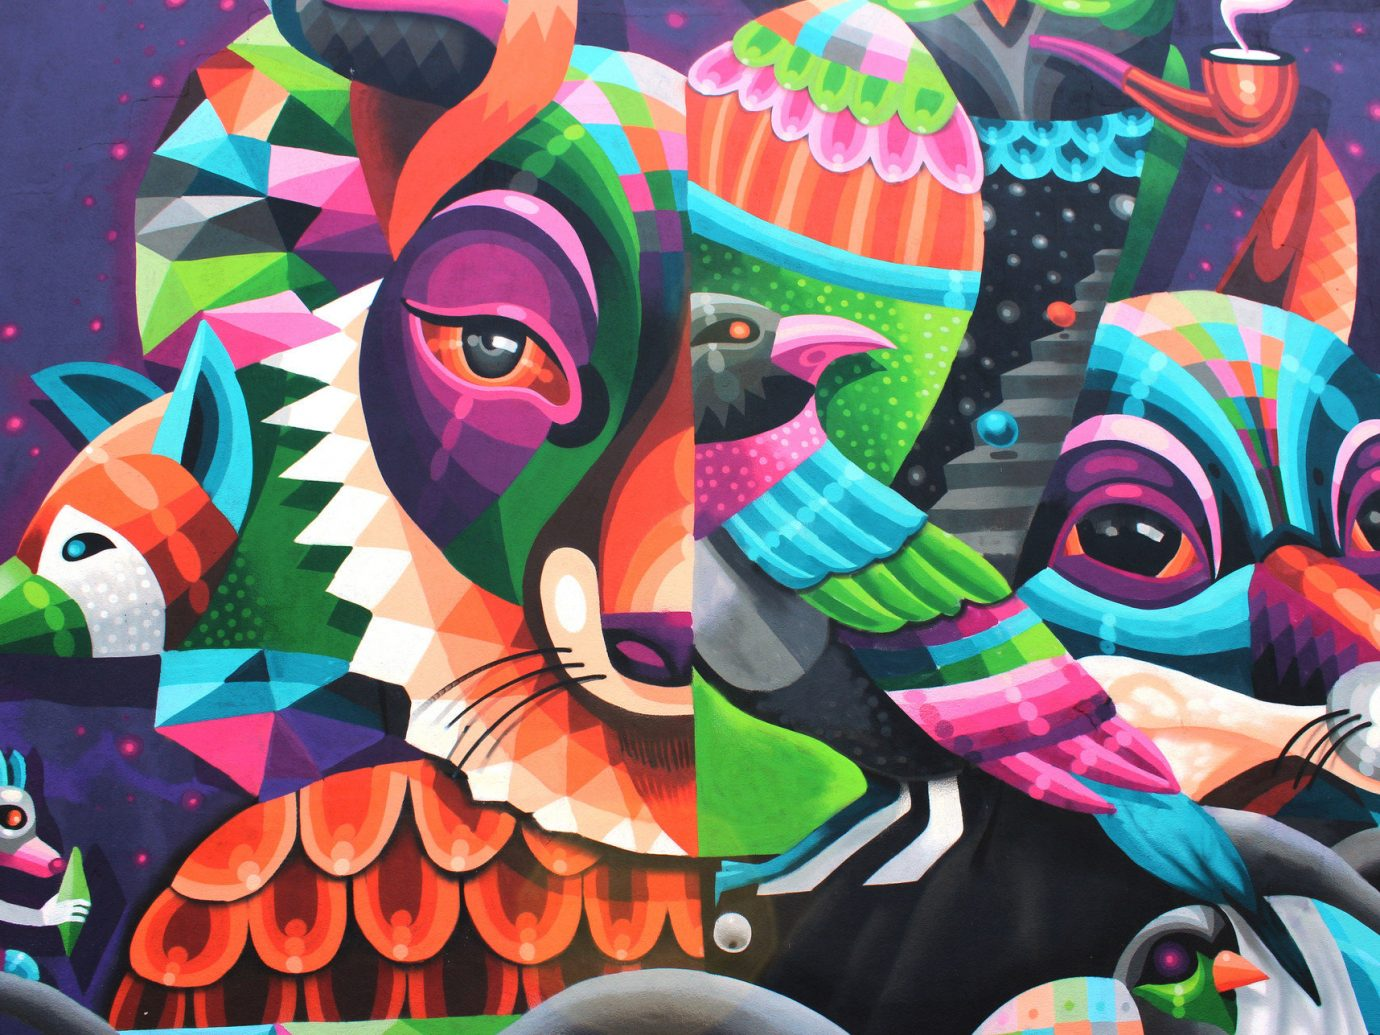 animals art Arts + Culture brick wall City city streets colorful graffiti street art streets urban color decorated mural colored screenshot illustration psychedelic art